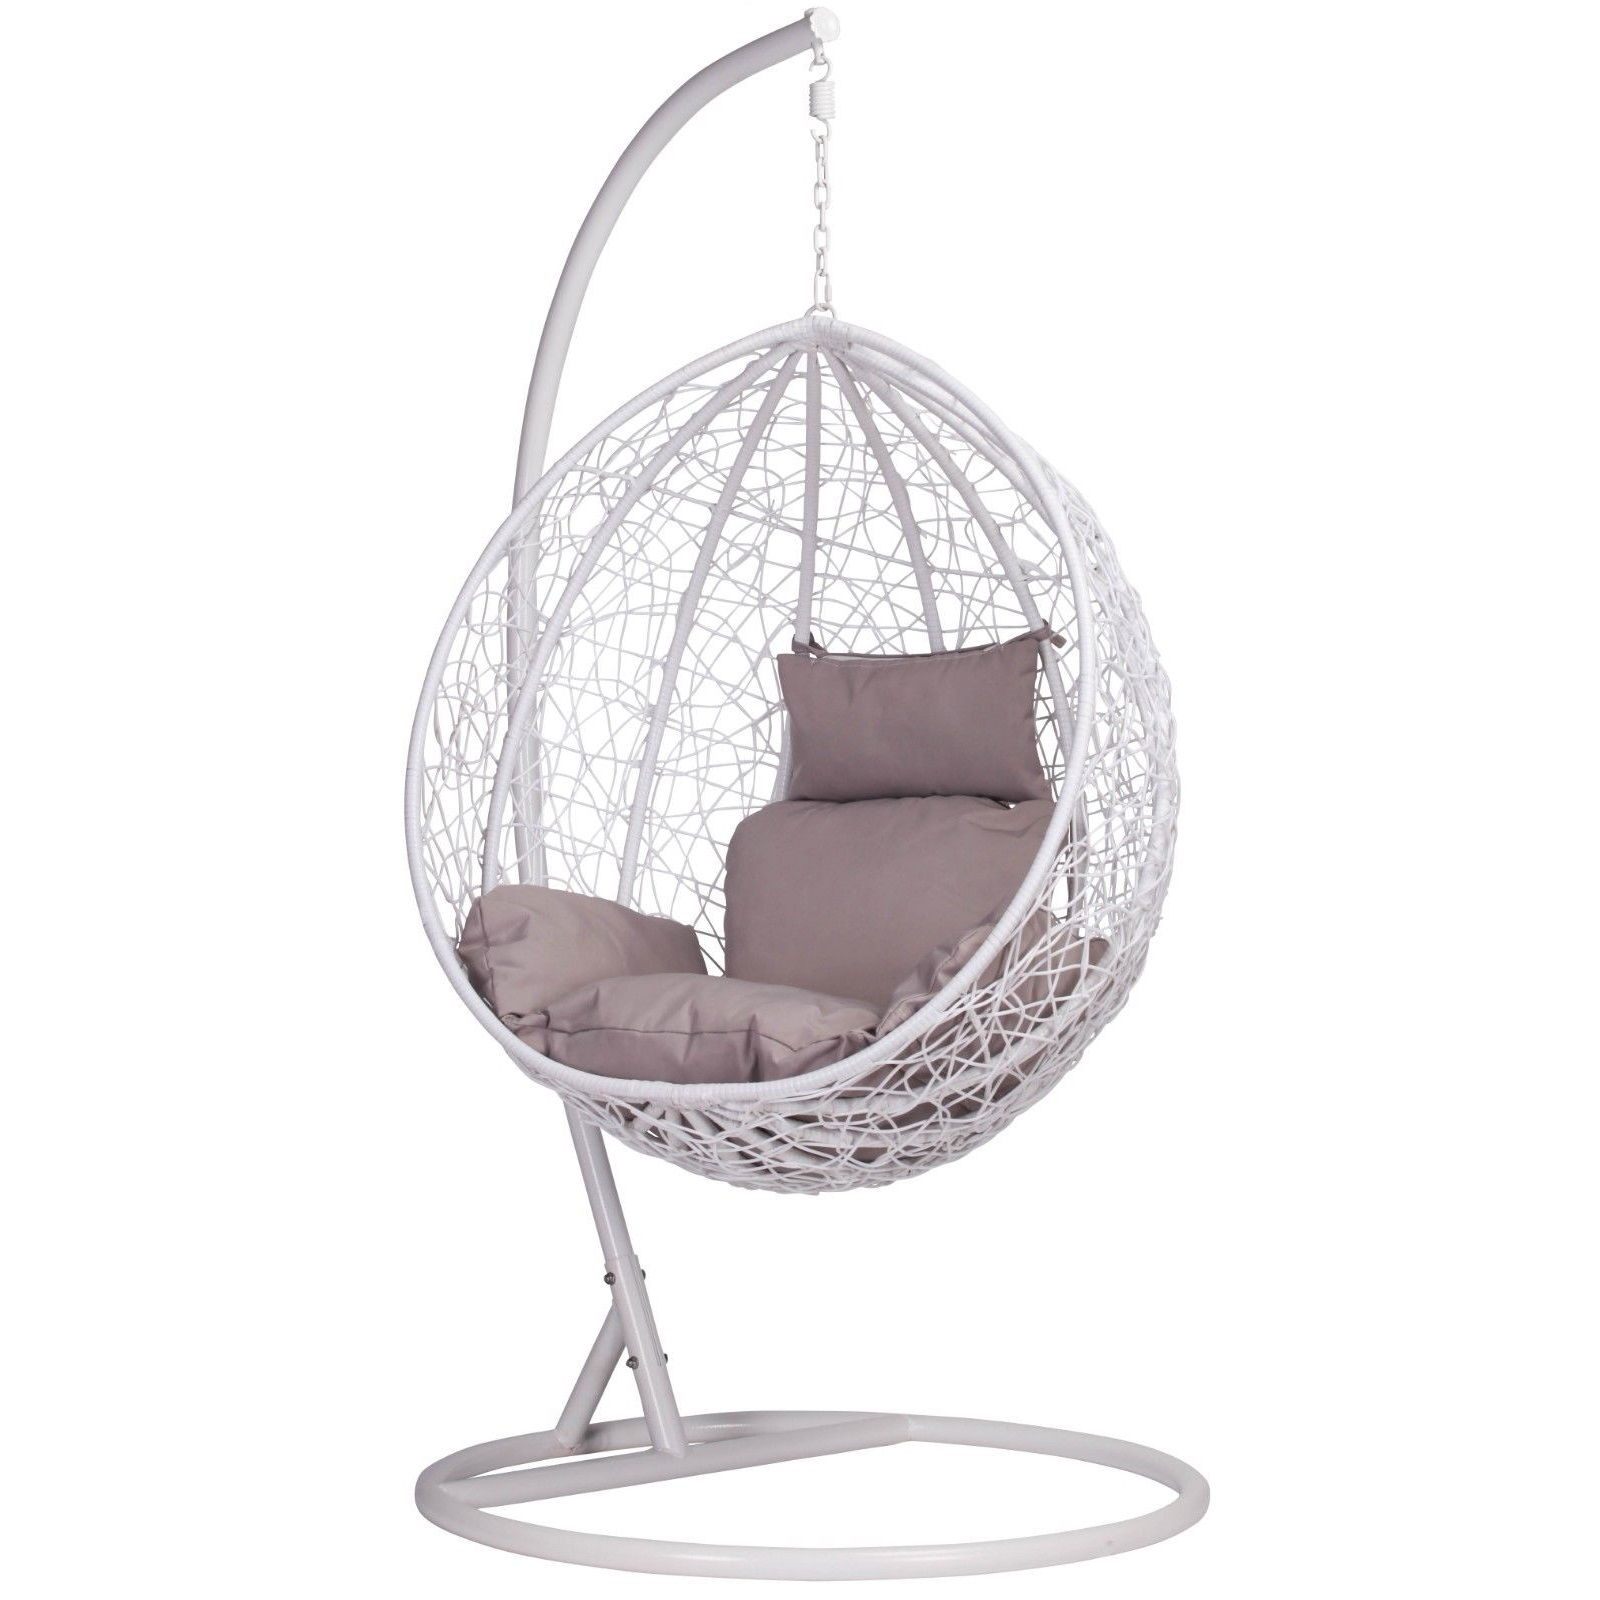 Egg Chairs That Hang From The Ceiling White Rattan Swing Weave Patio Garden Hanging Egg Chair